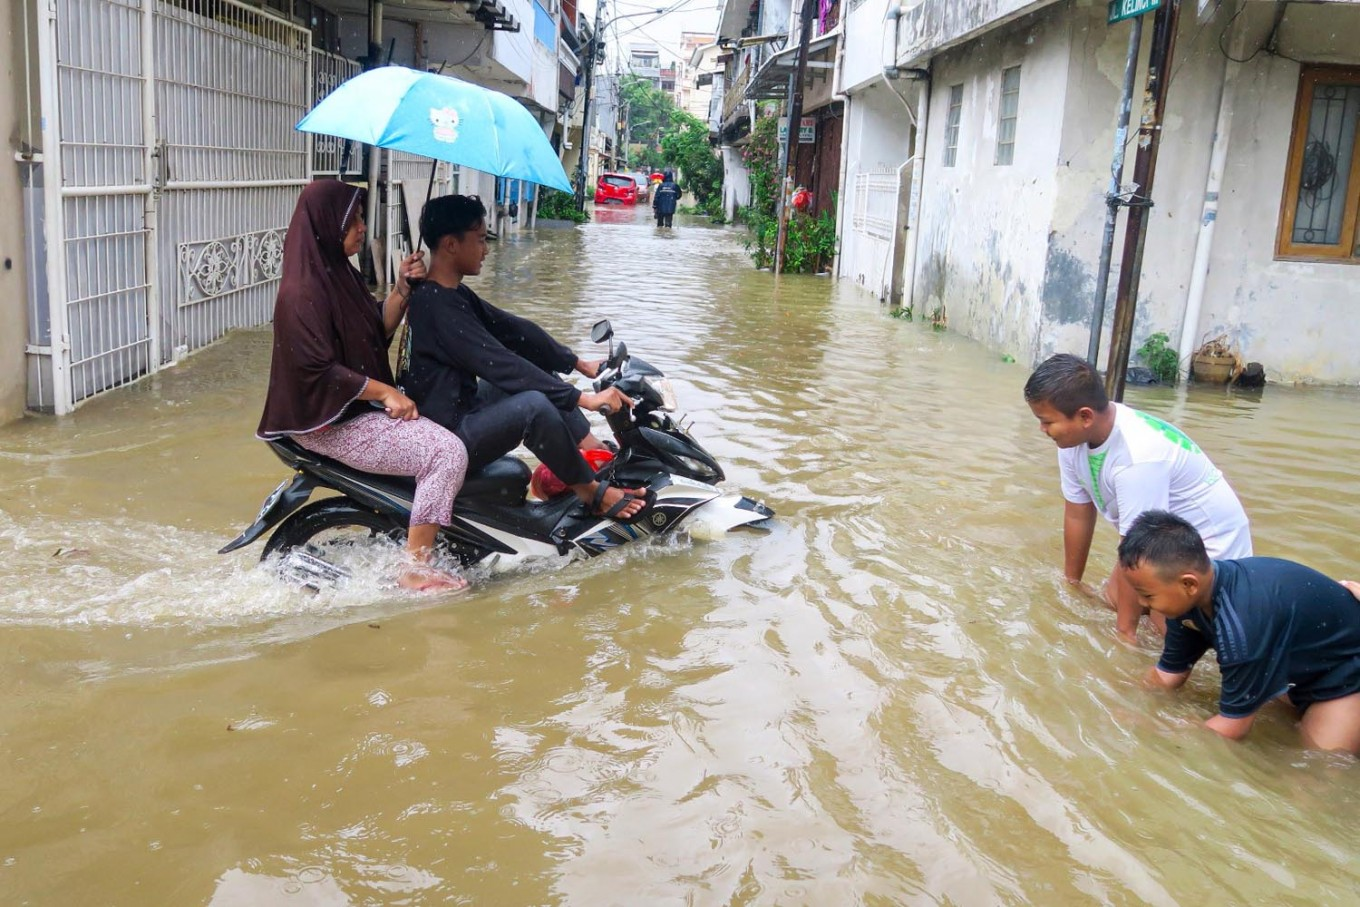 Children play during a flood in Pasar Baru, Central Jakarta, on Jan. 1. Antara/M Risyal Hidayat